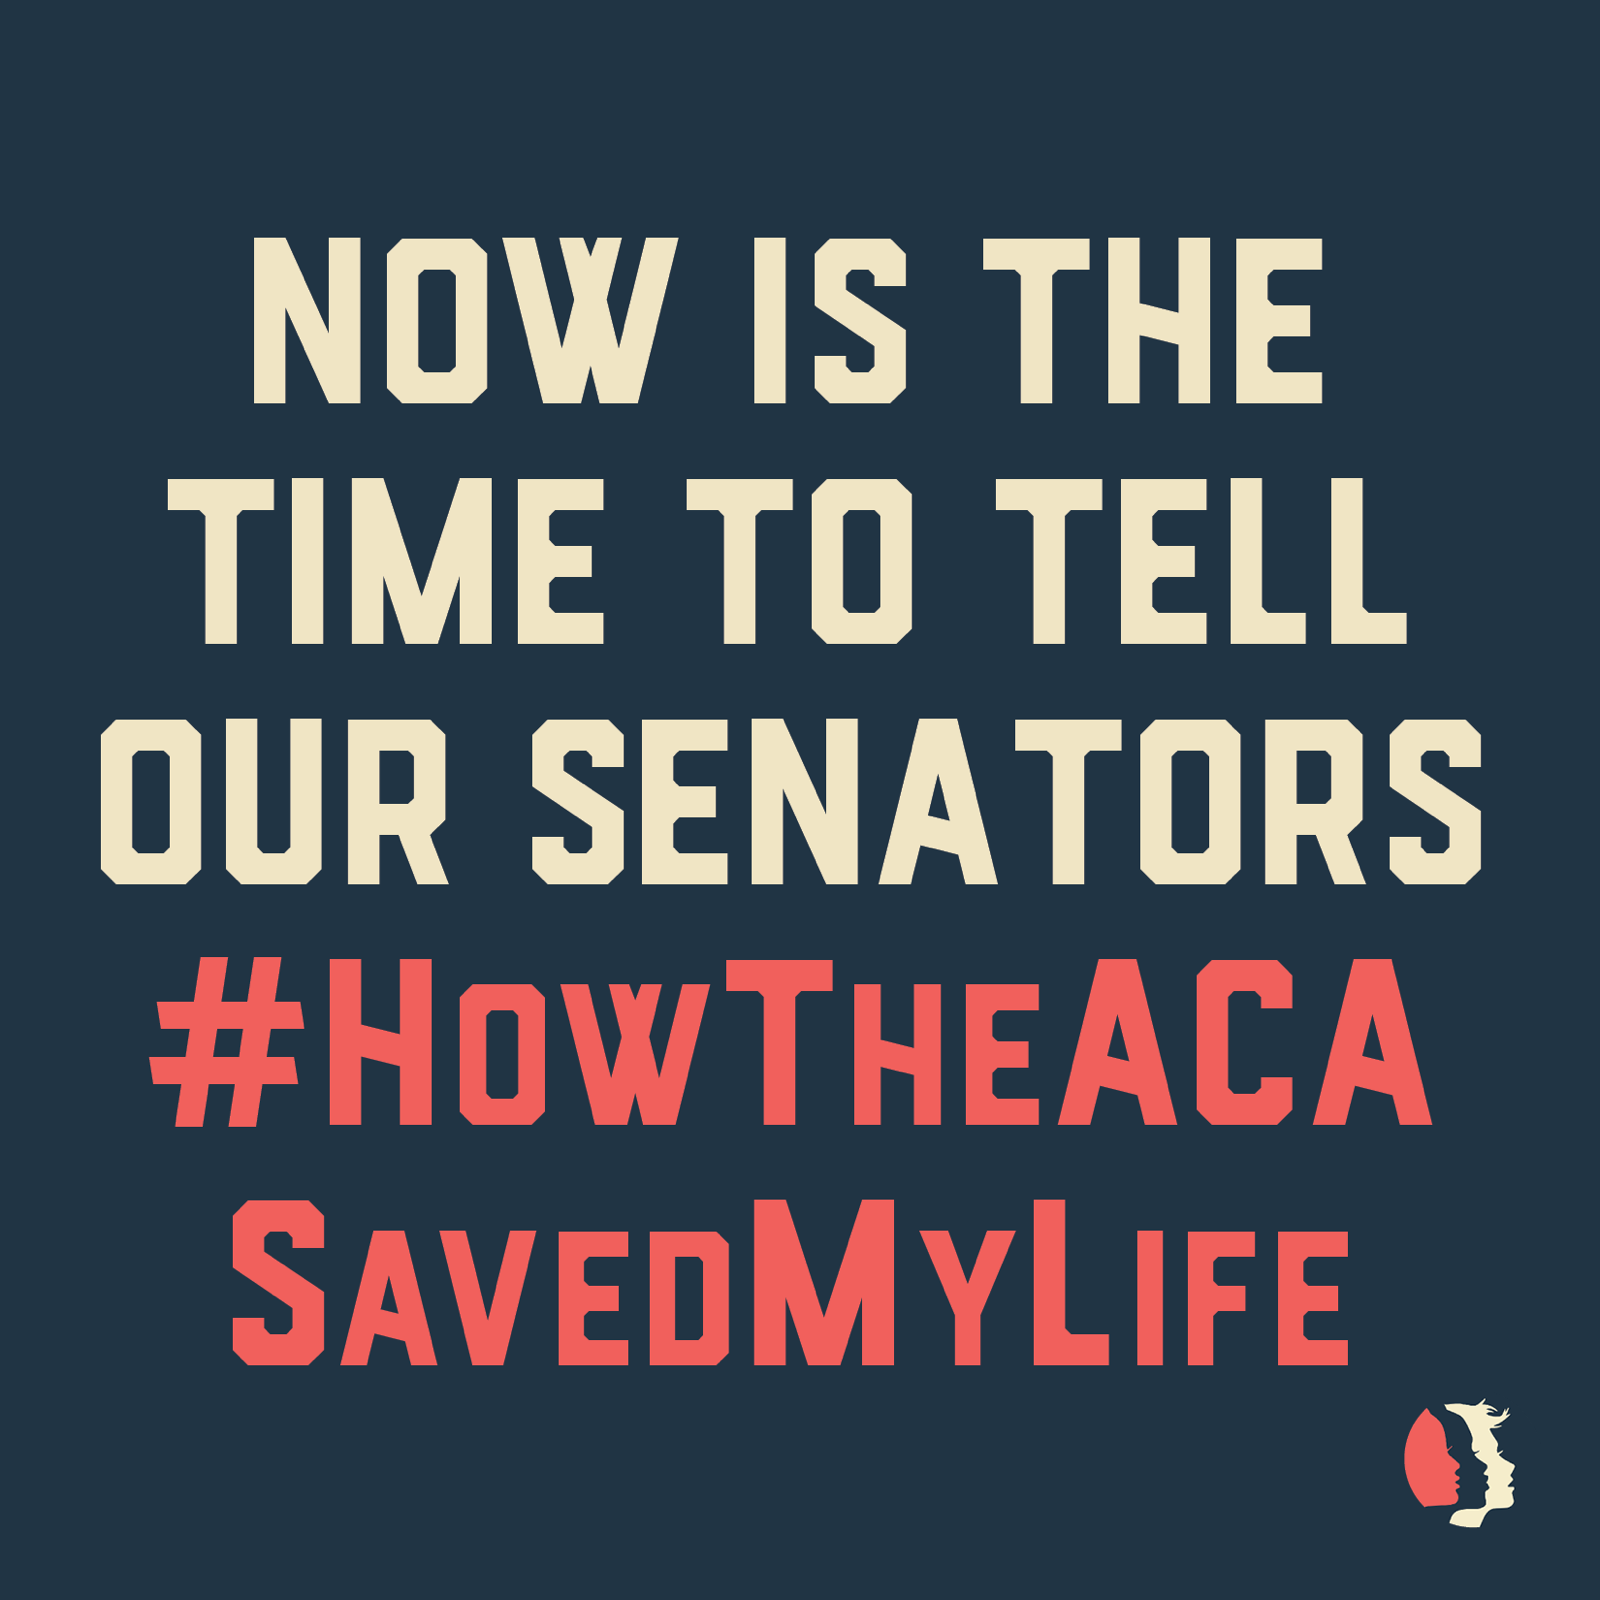 Now is the time to tell our senators #HowTheACASavedMyLife